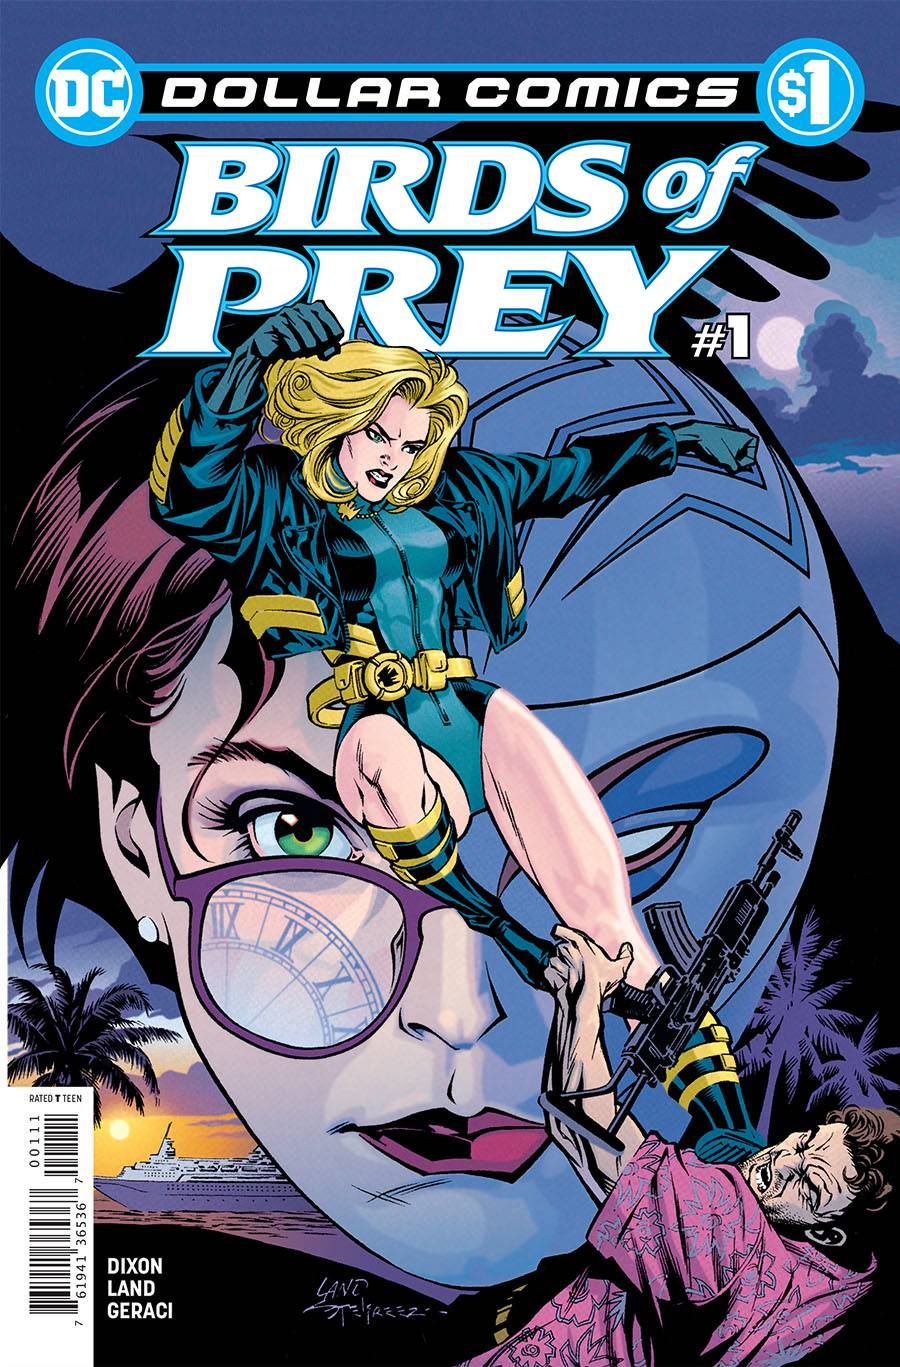 DOLLAR COMICS BIRDS OF PREY #1